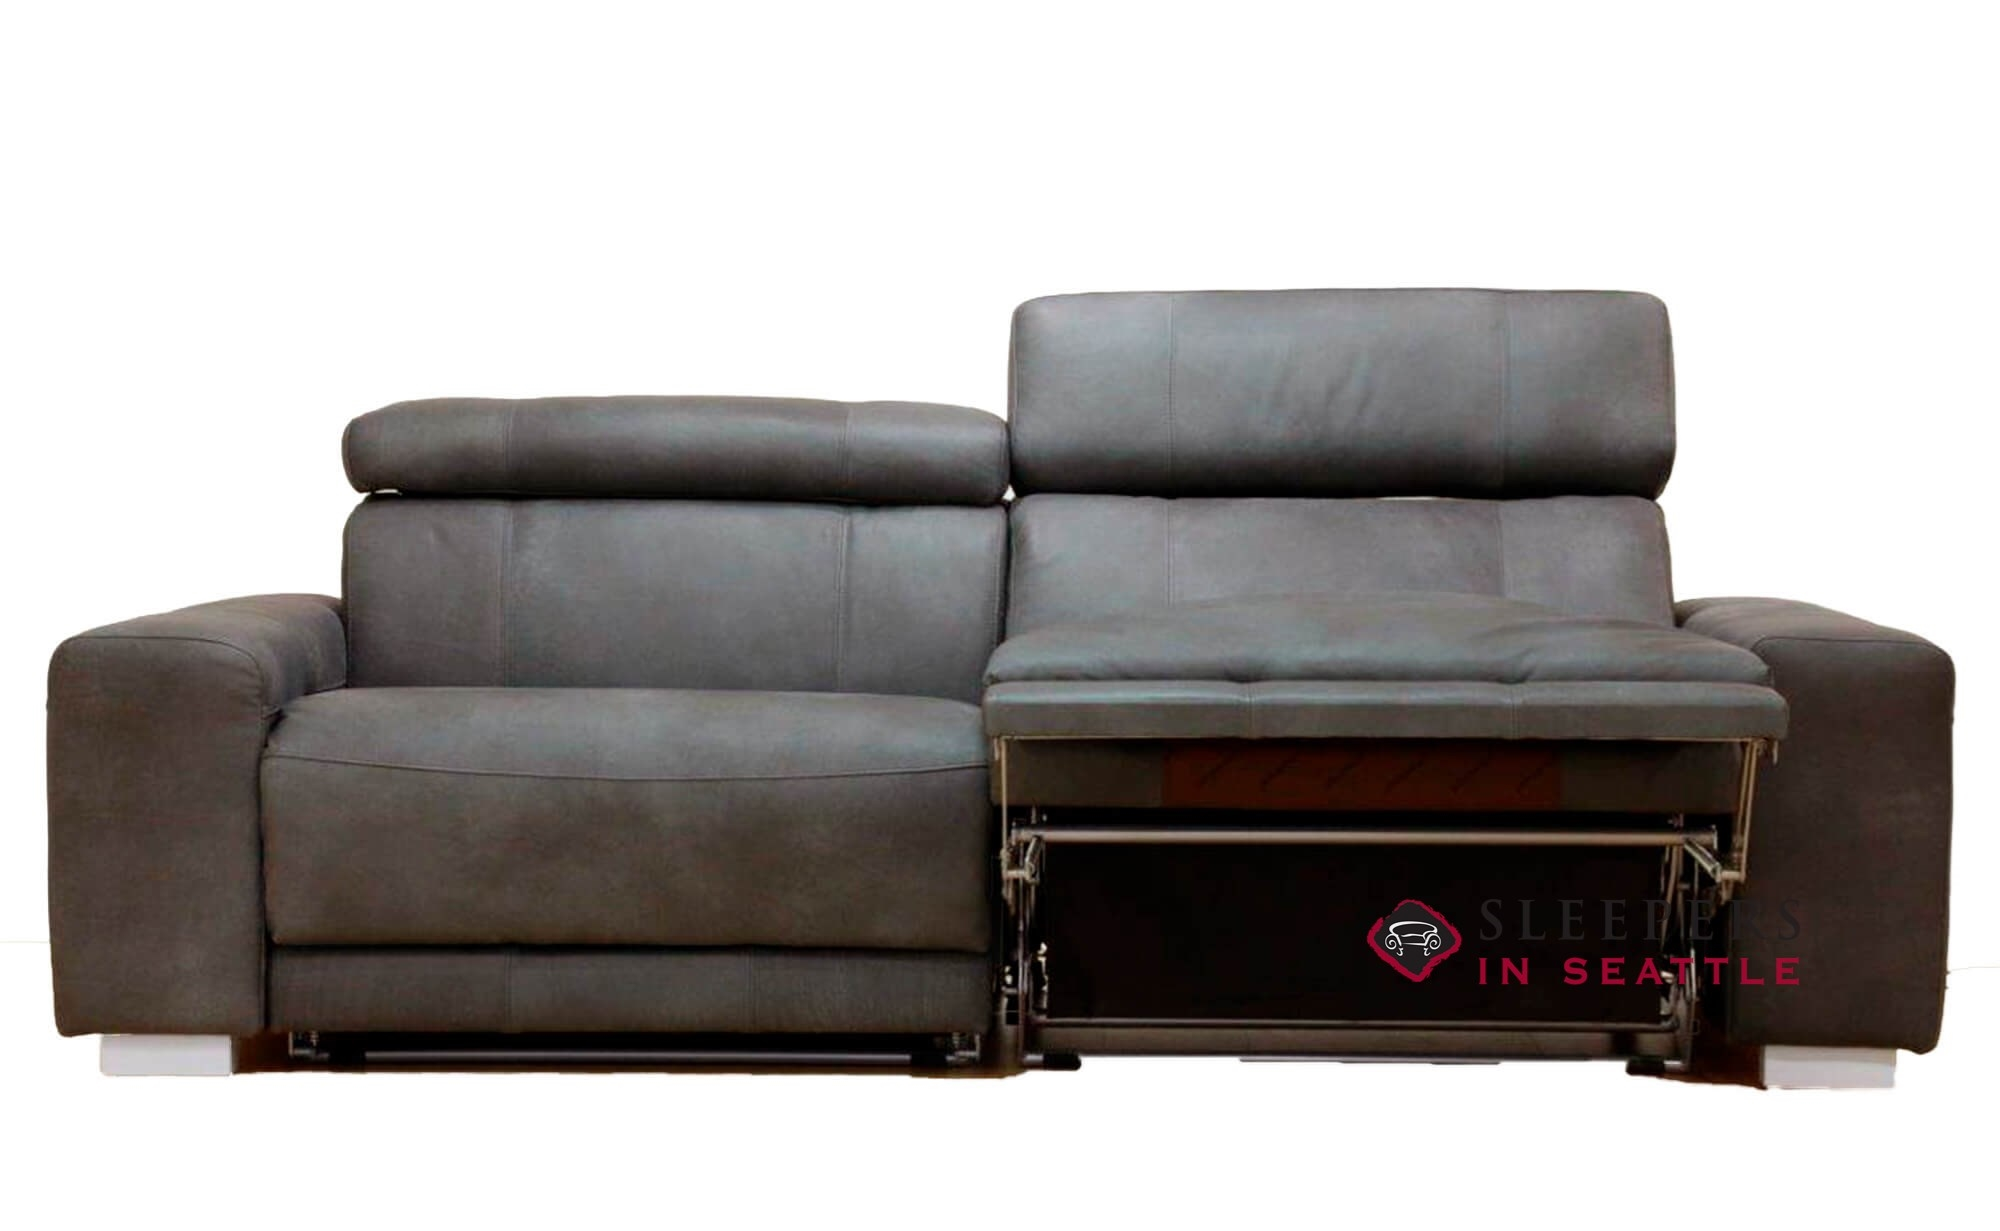 Customize And Personalize Monex Queen Fabric Sofa By Luonto Queen Size Sofa Bed Sleepersinseattle Com